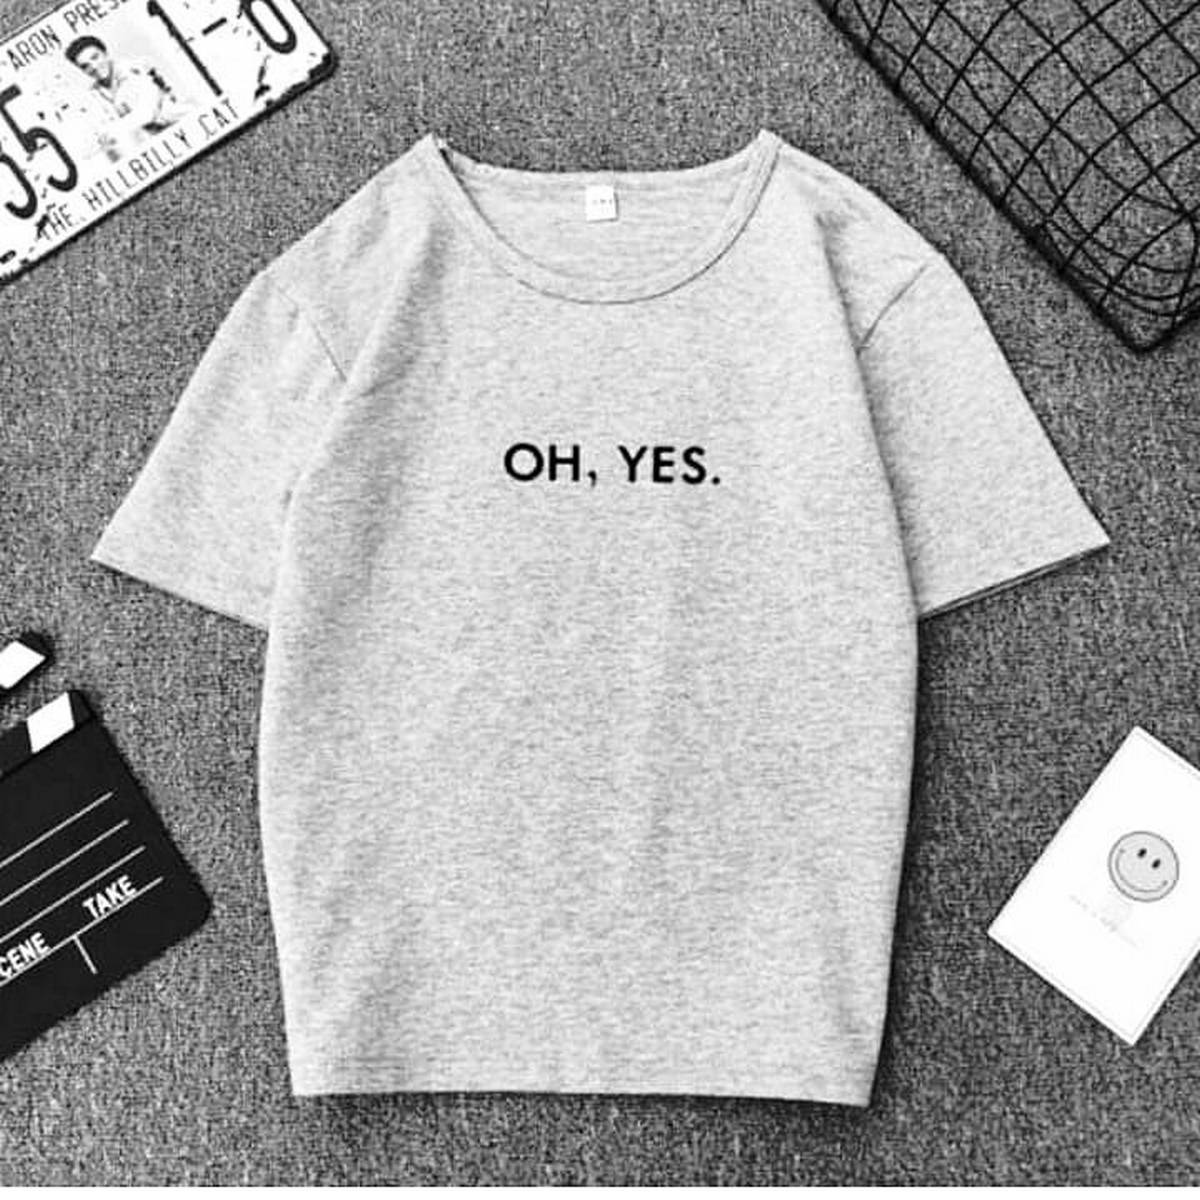 Oh Yes  Women Tshirt Cotton Funny Casual Lady White Black Gray Top Tees - Hazar Grey